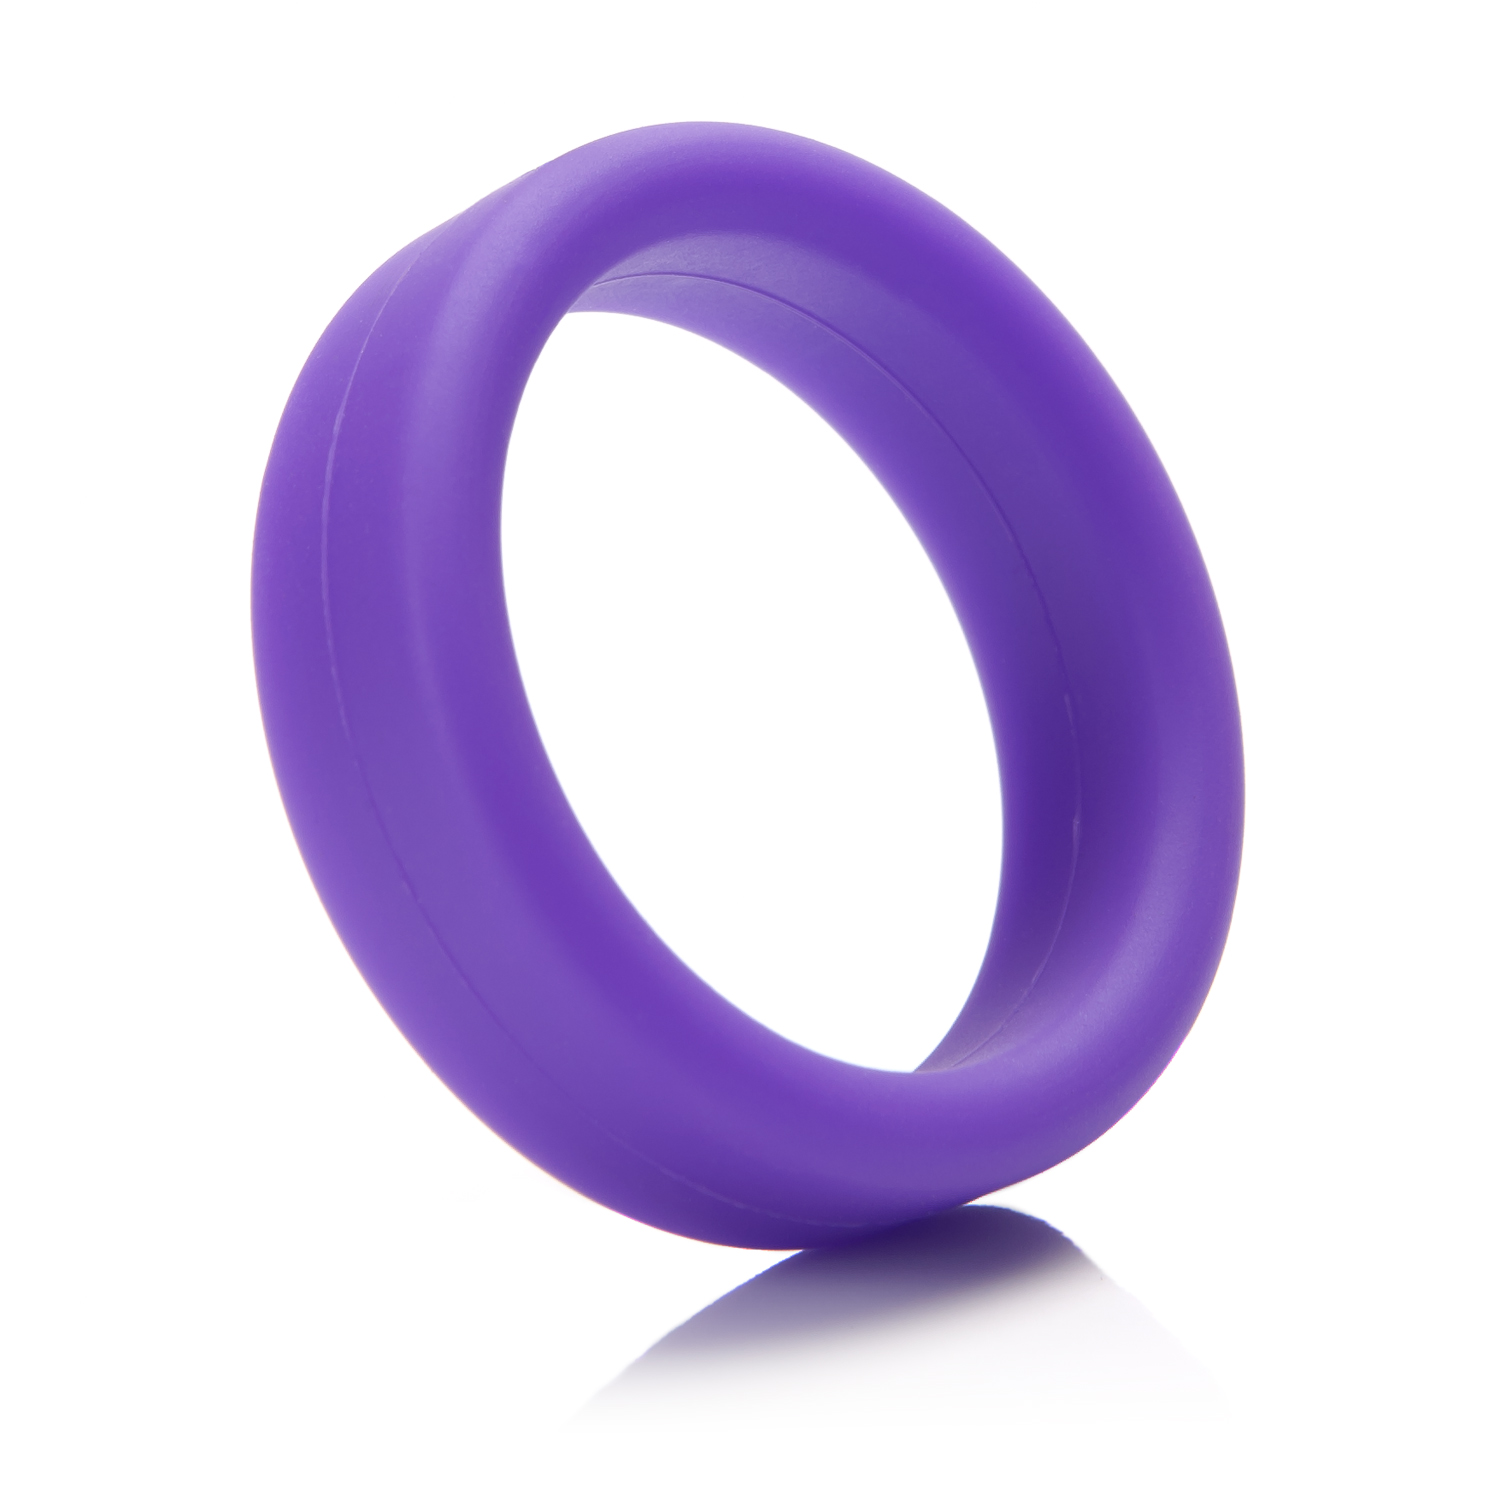 T-C2172 Tantus Super Soft C-Ring Purple  NO FURTHER DISCOUNTS APPLY